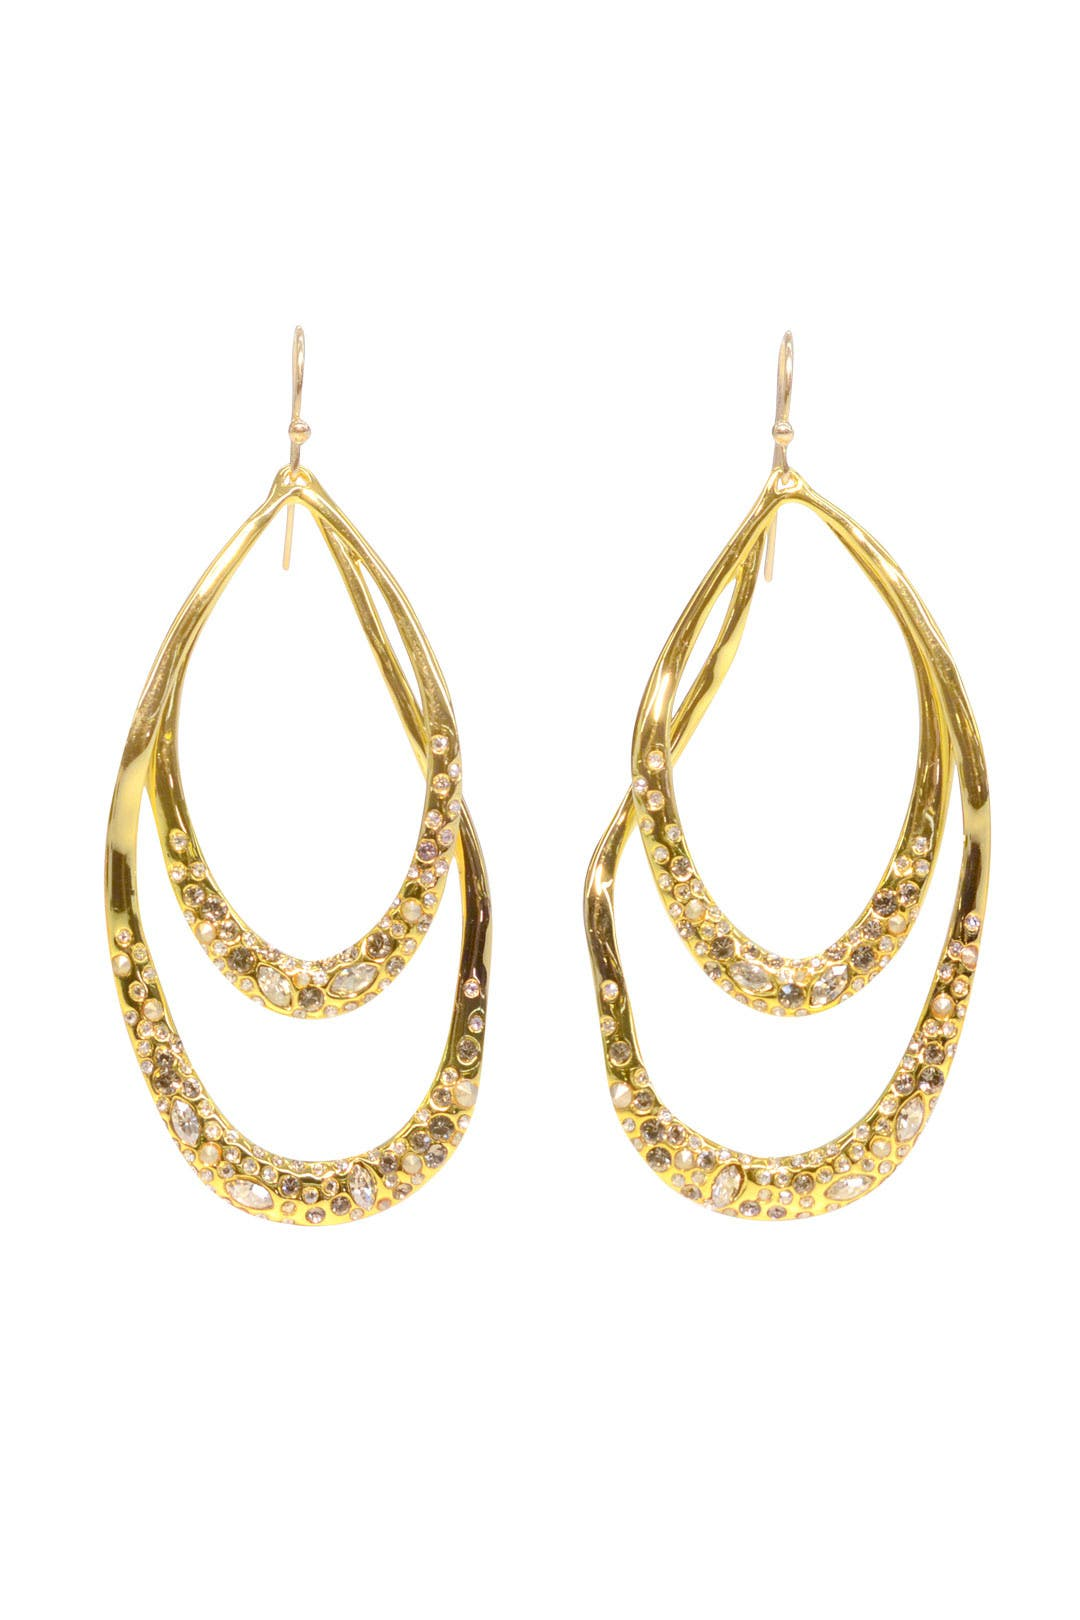 Double Loop Pave Encrusted Earring by Alexis Bittar